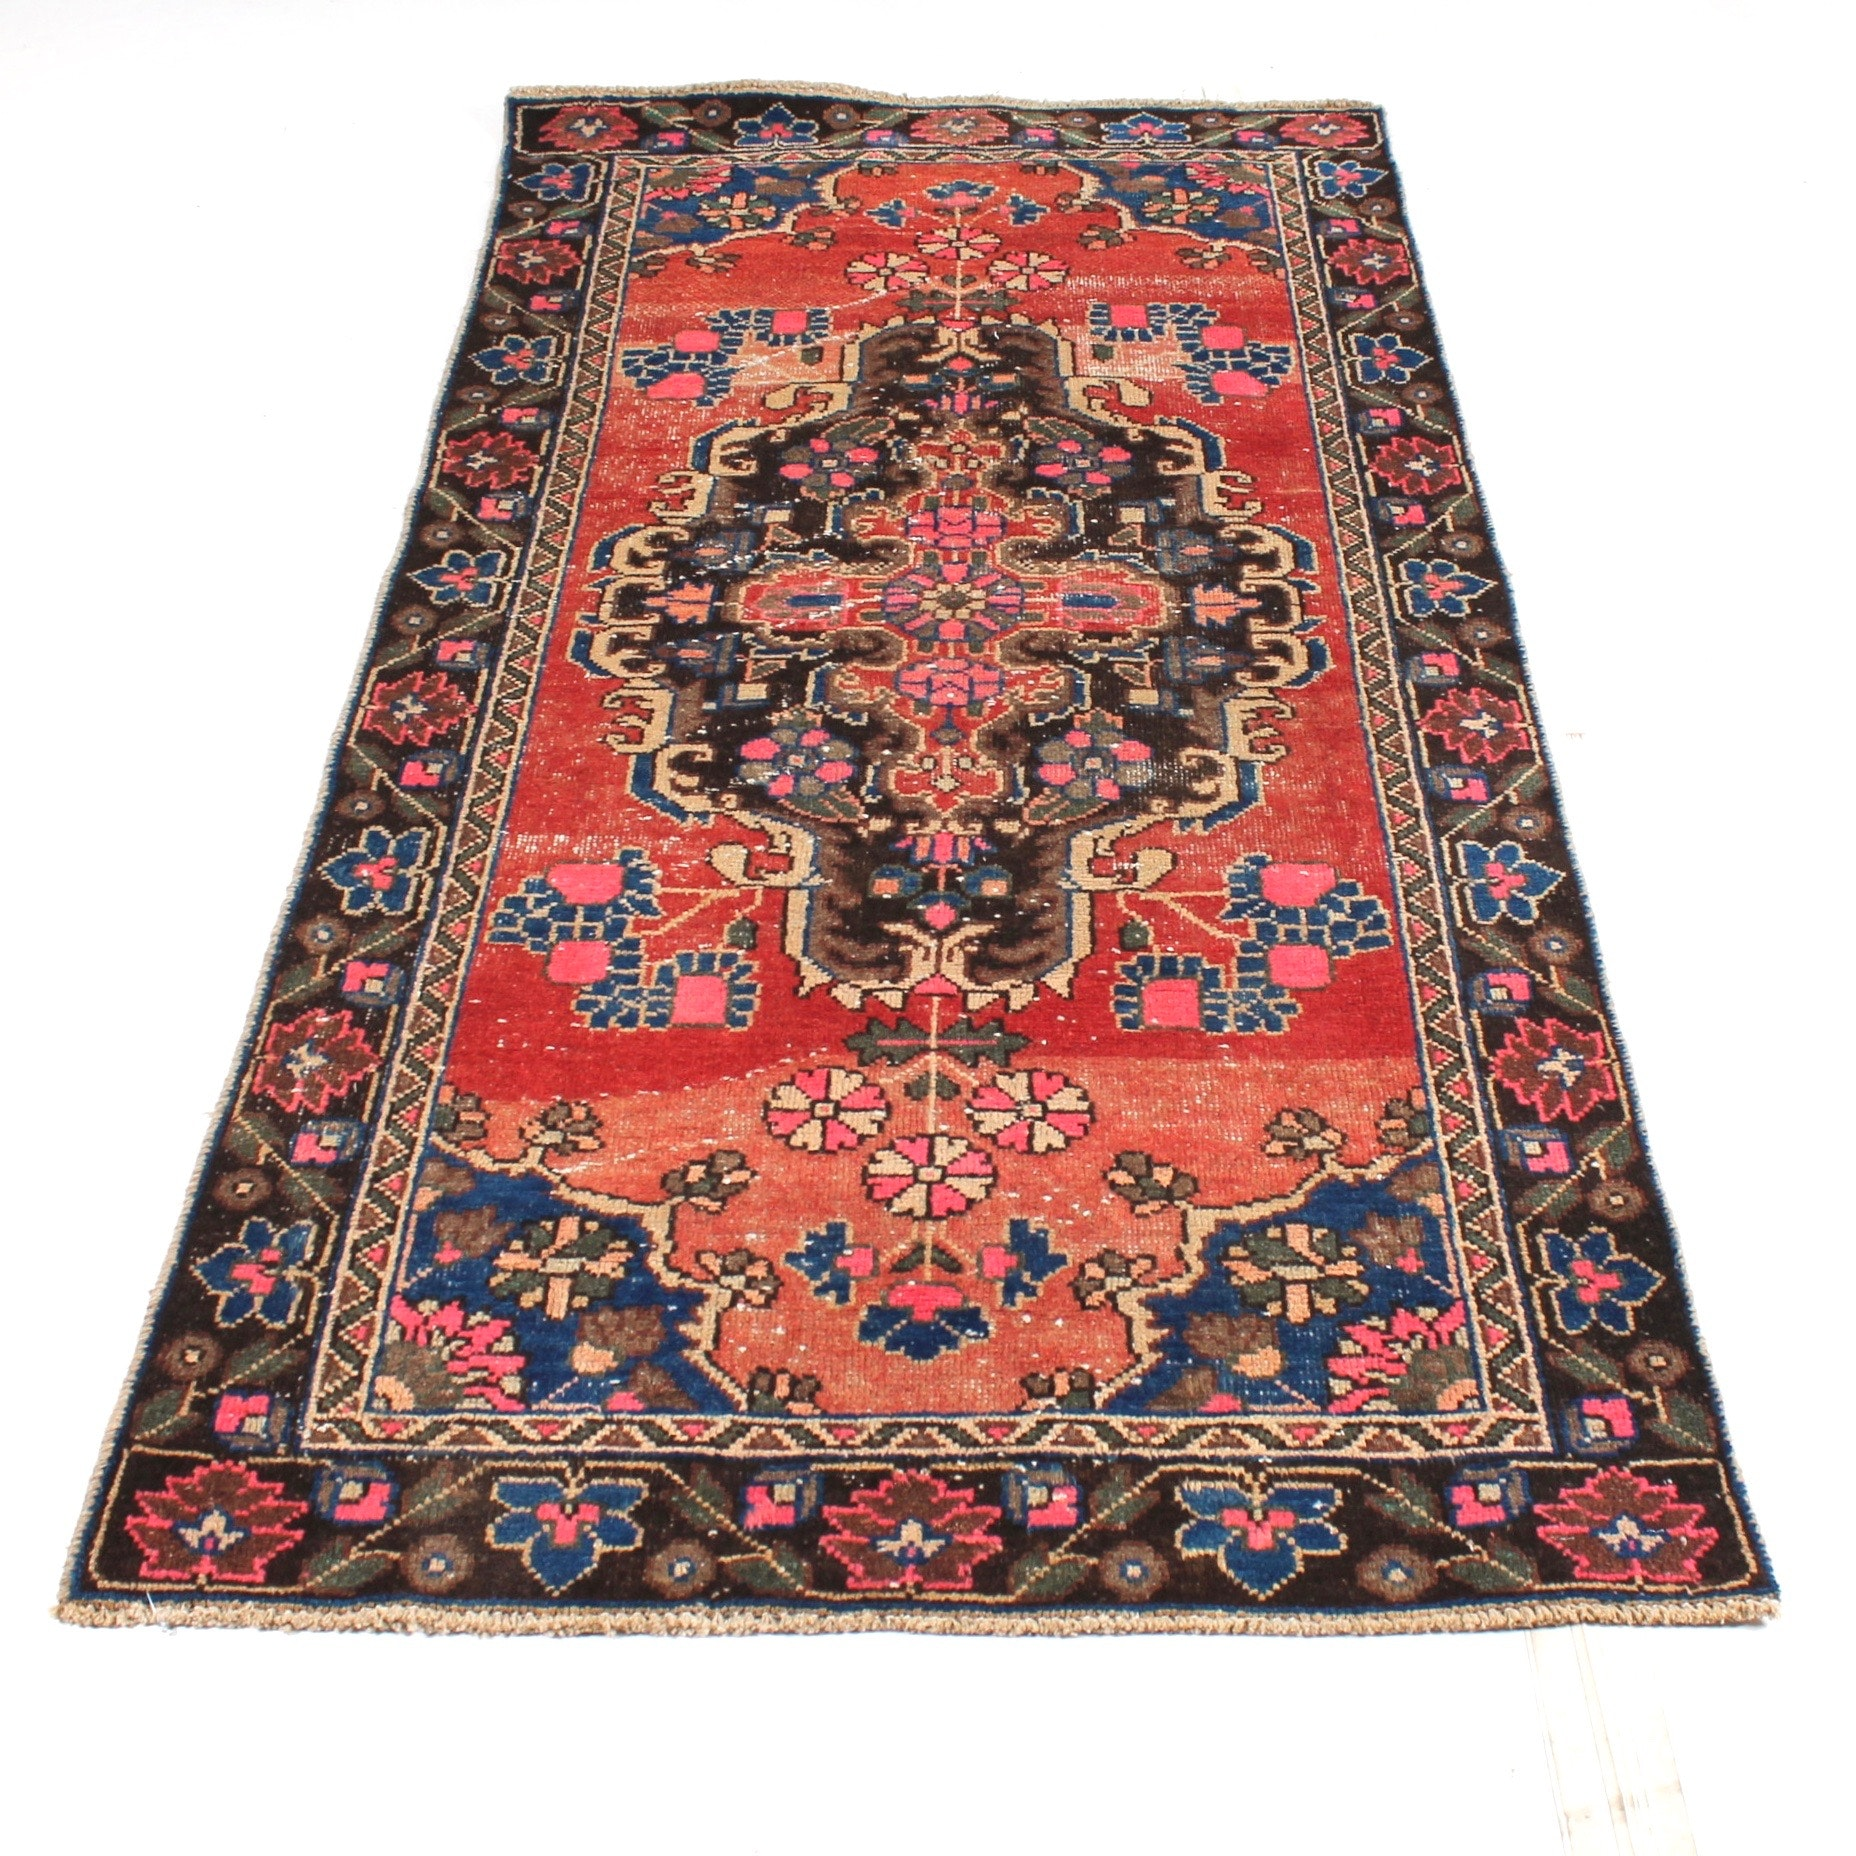 Semi-Antique Hand-Knotted Persian Malayer Sarouk Runner Rug